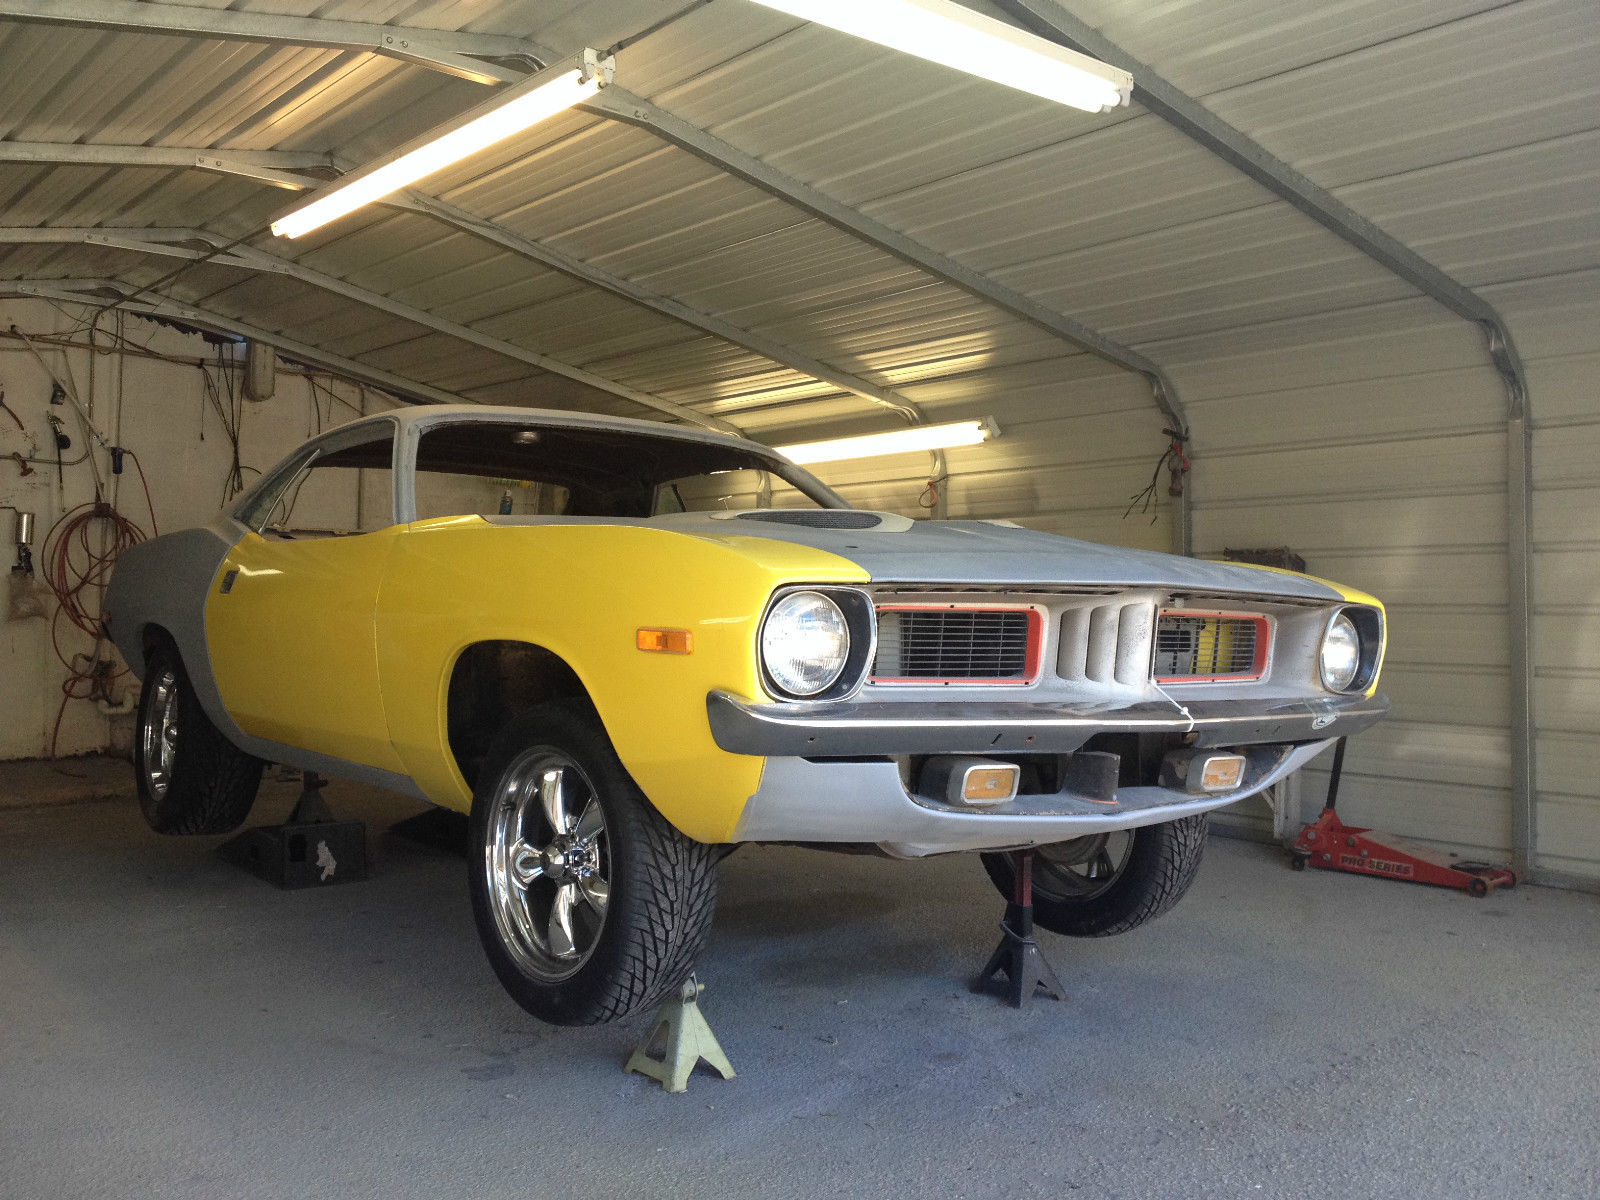 1973 Plymouth Barracuda Project Cars For Sale